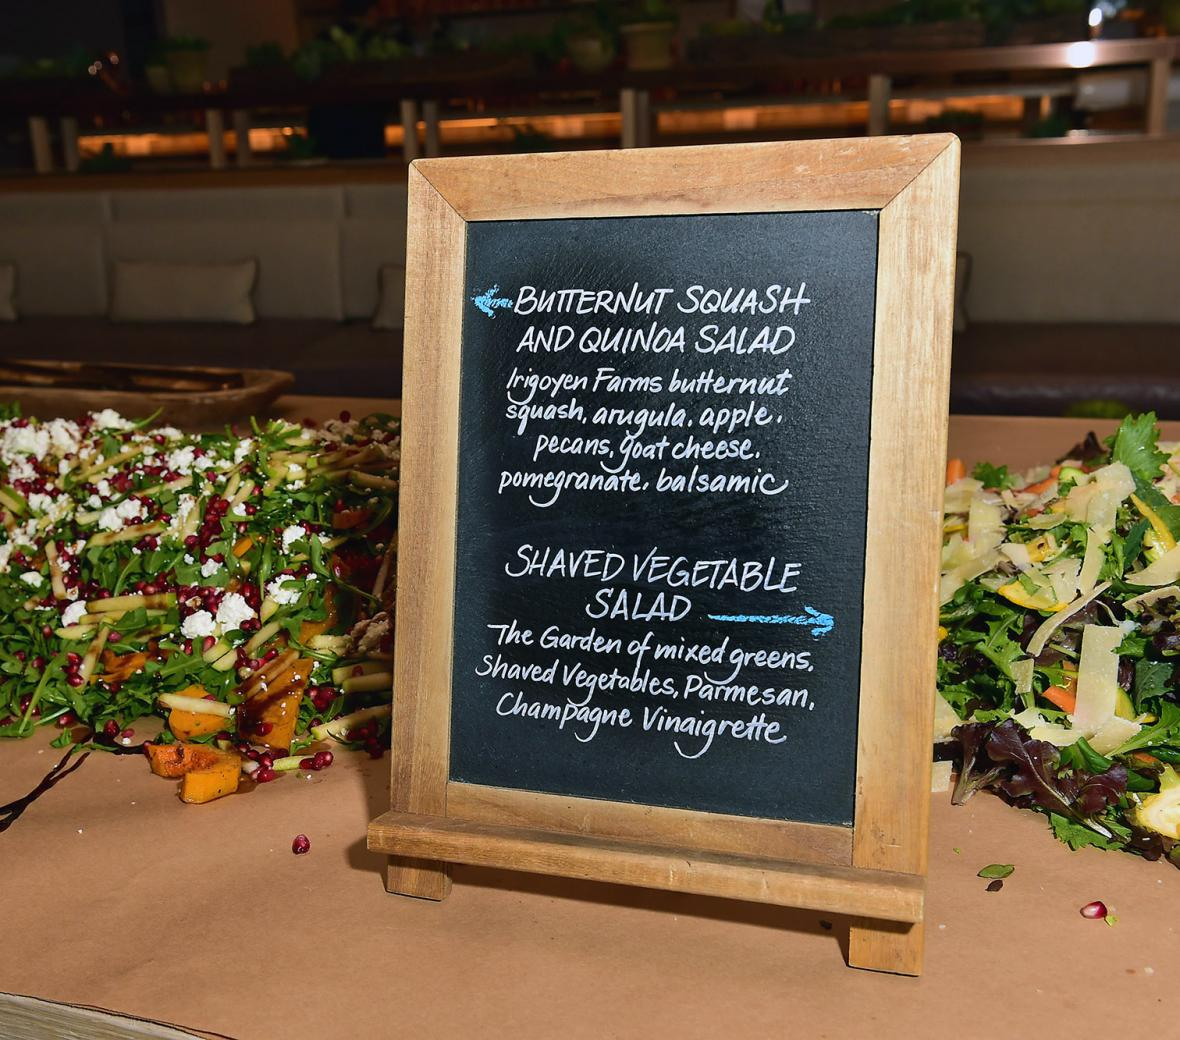 Catering Photo 1 Hotel West Hollywood